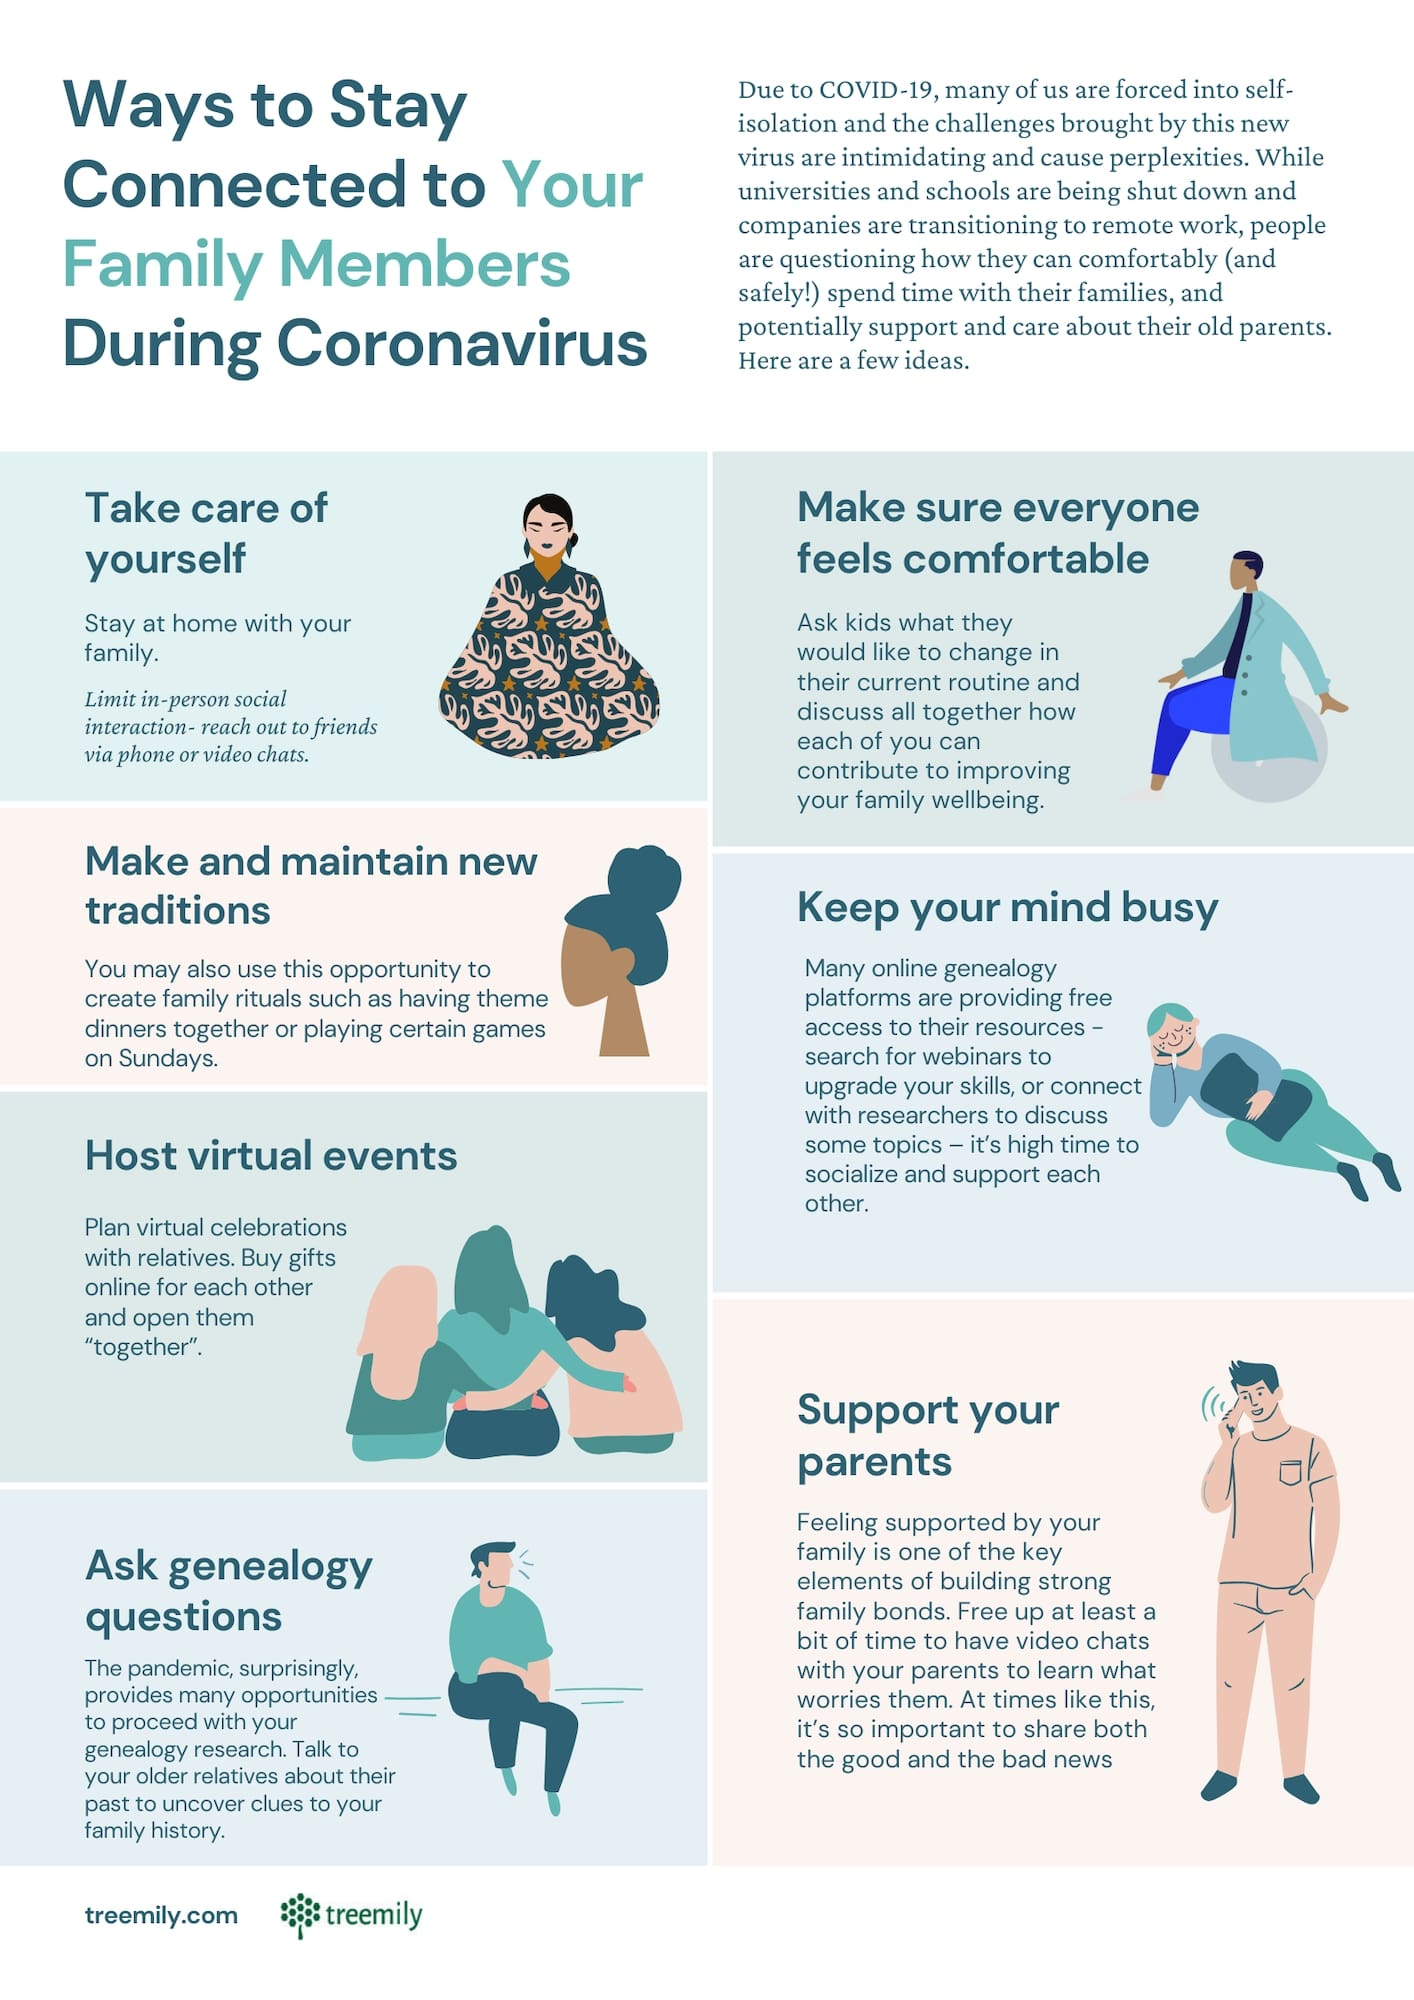 Ways to Stay Connected to Your Family Members During Coronavirus